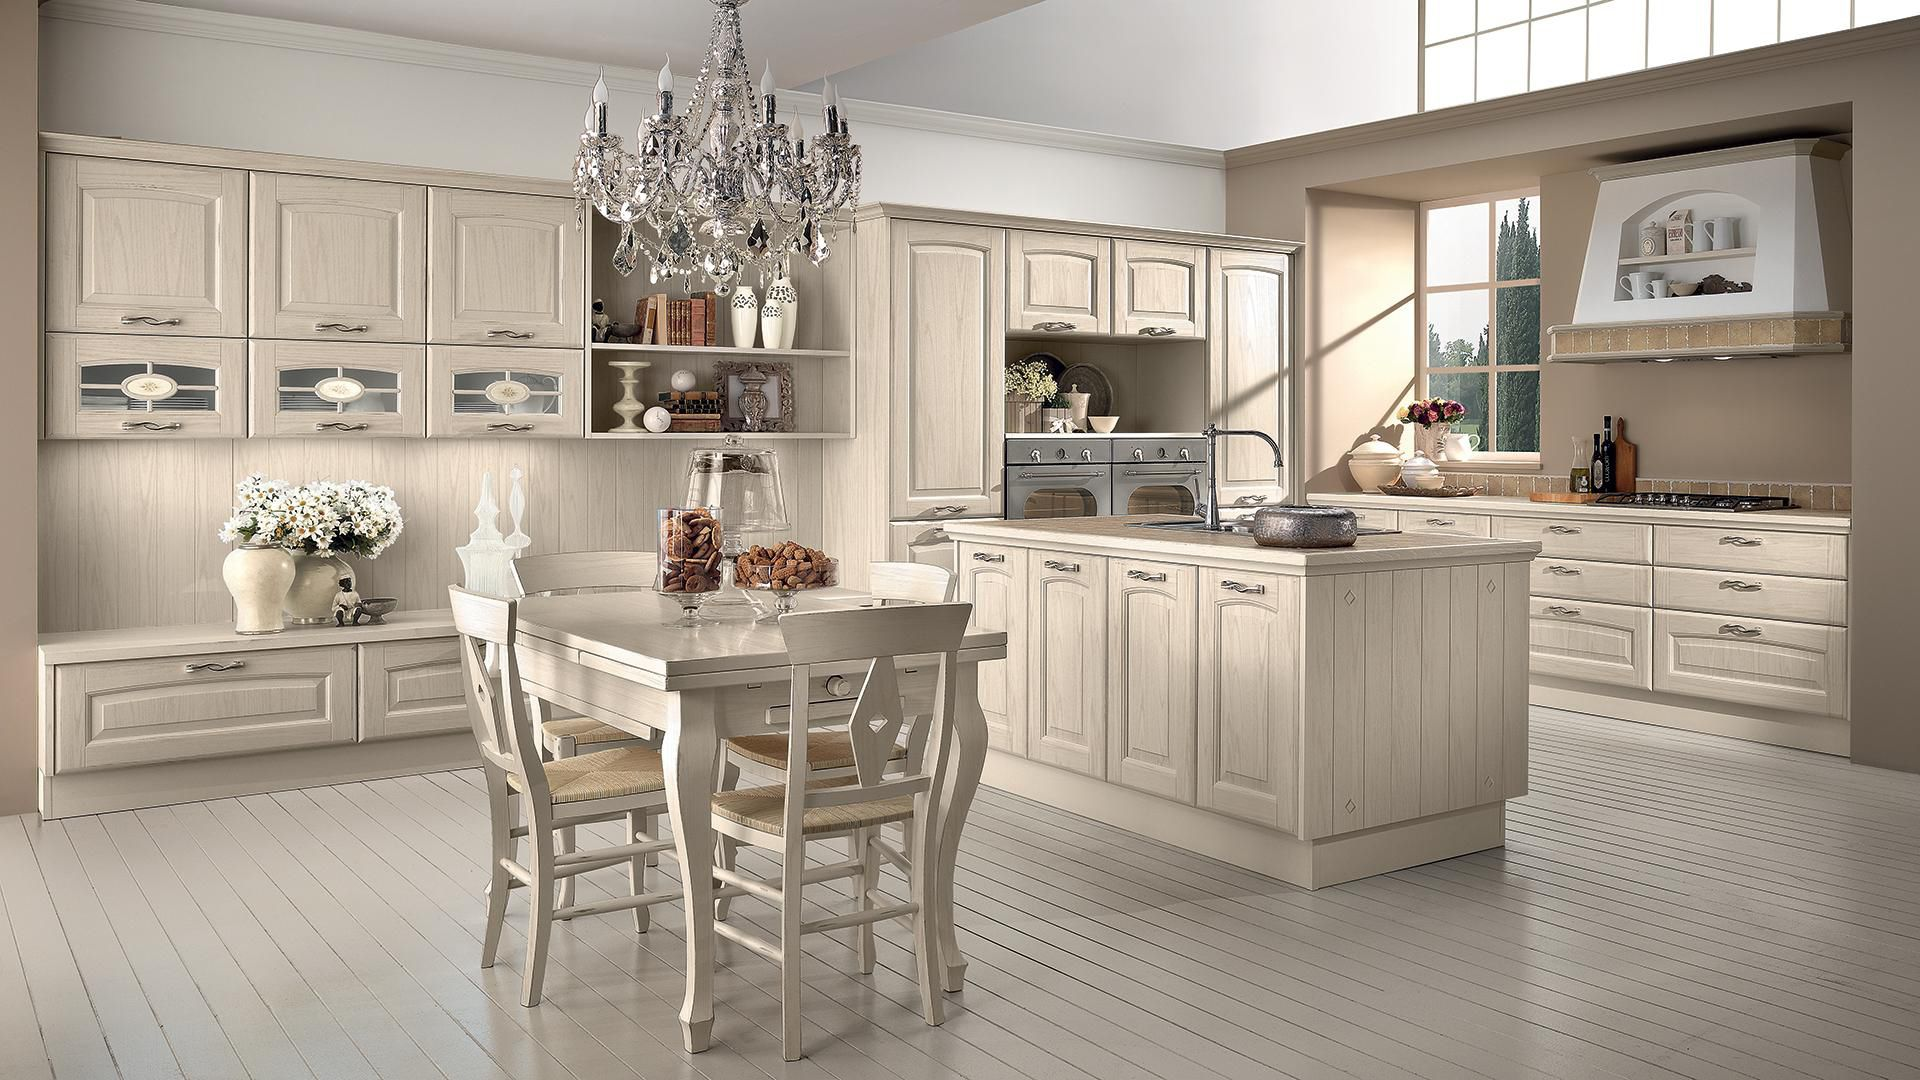 Lube Cucine Veronica Traditional Kitchen Solid Wood Island With Handles Veronica Cucine Lube